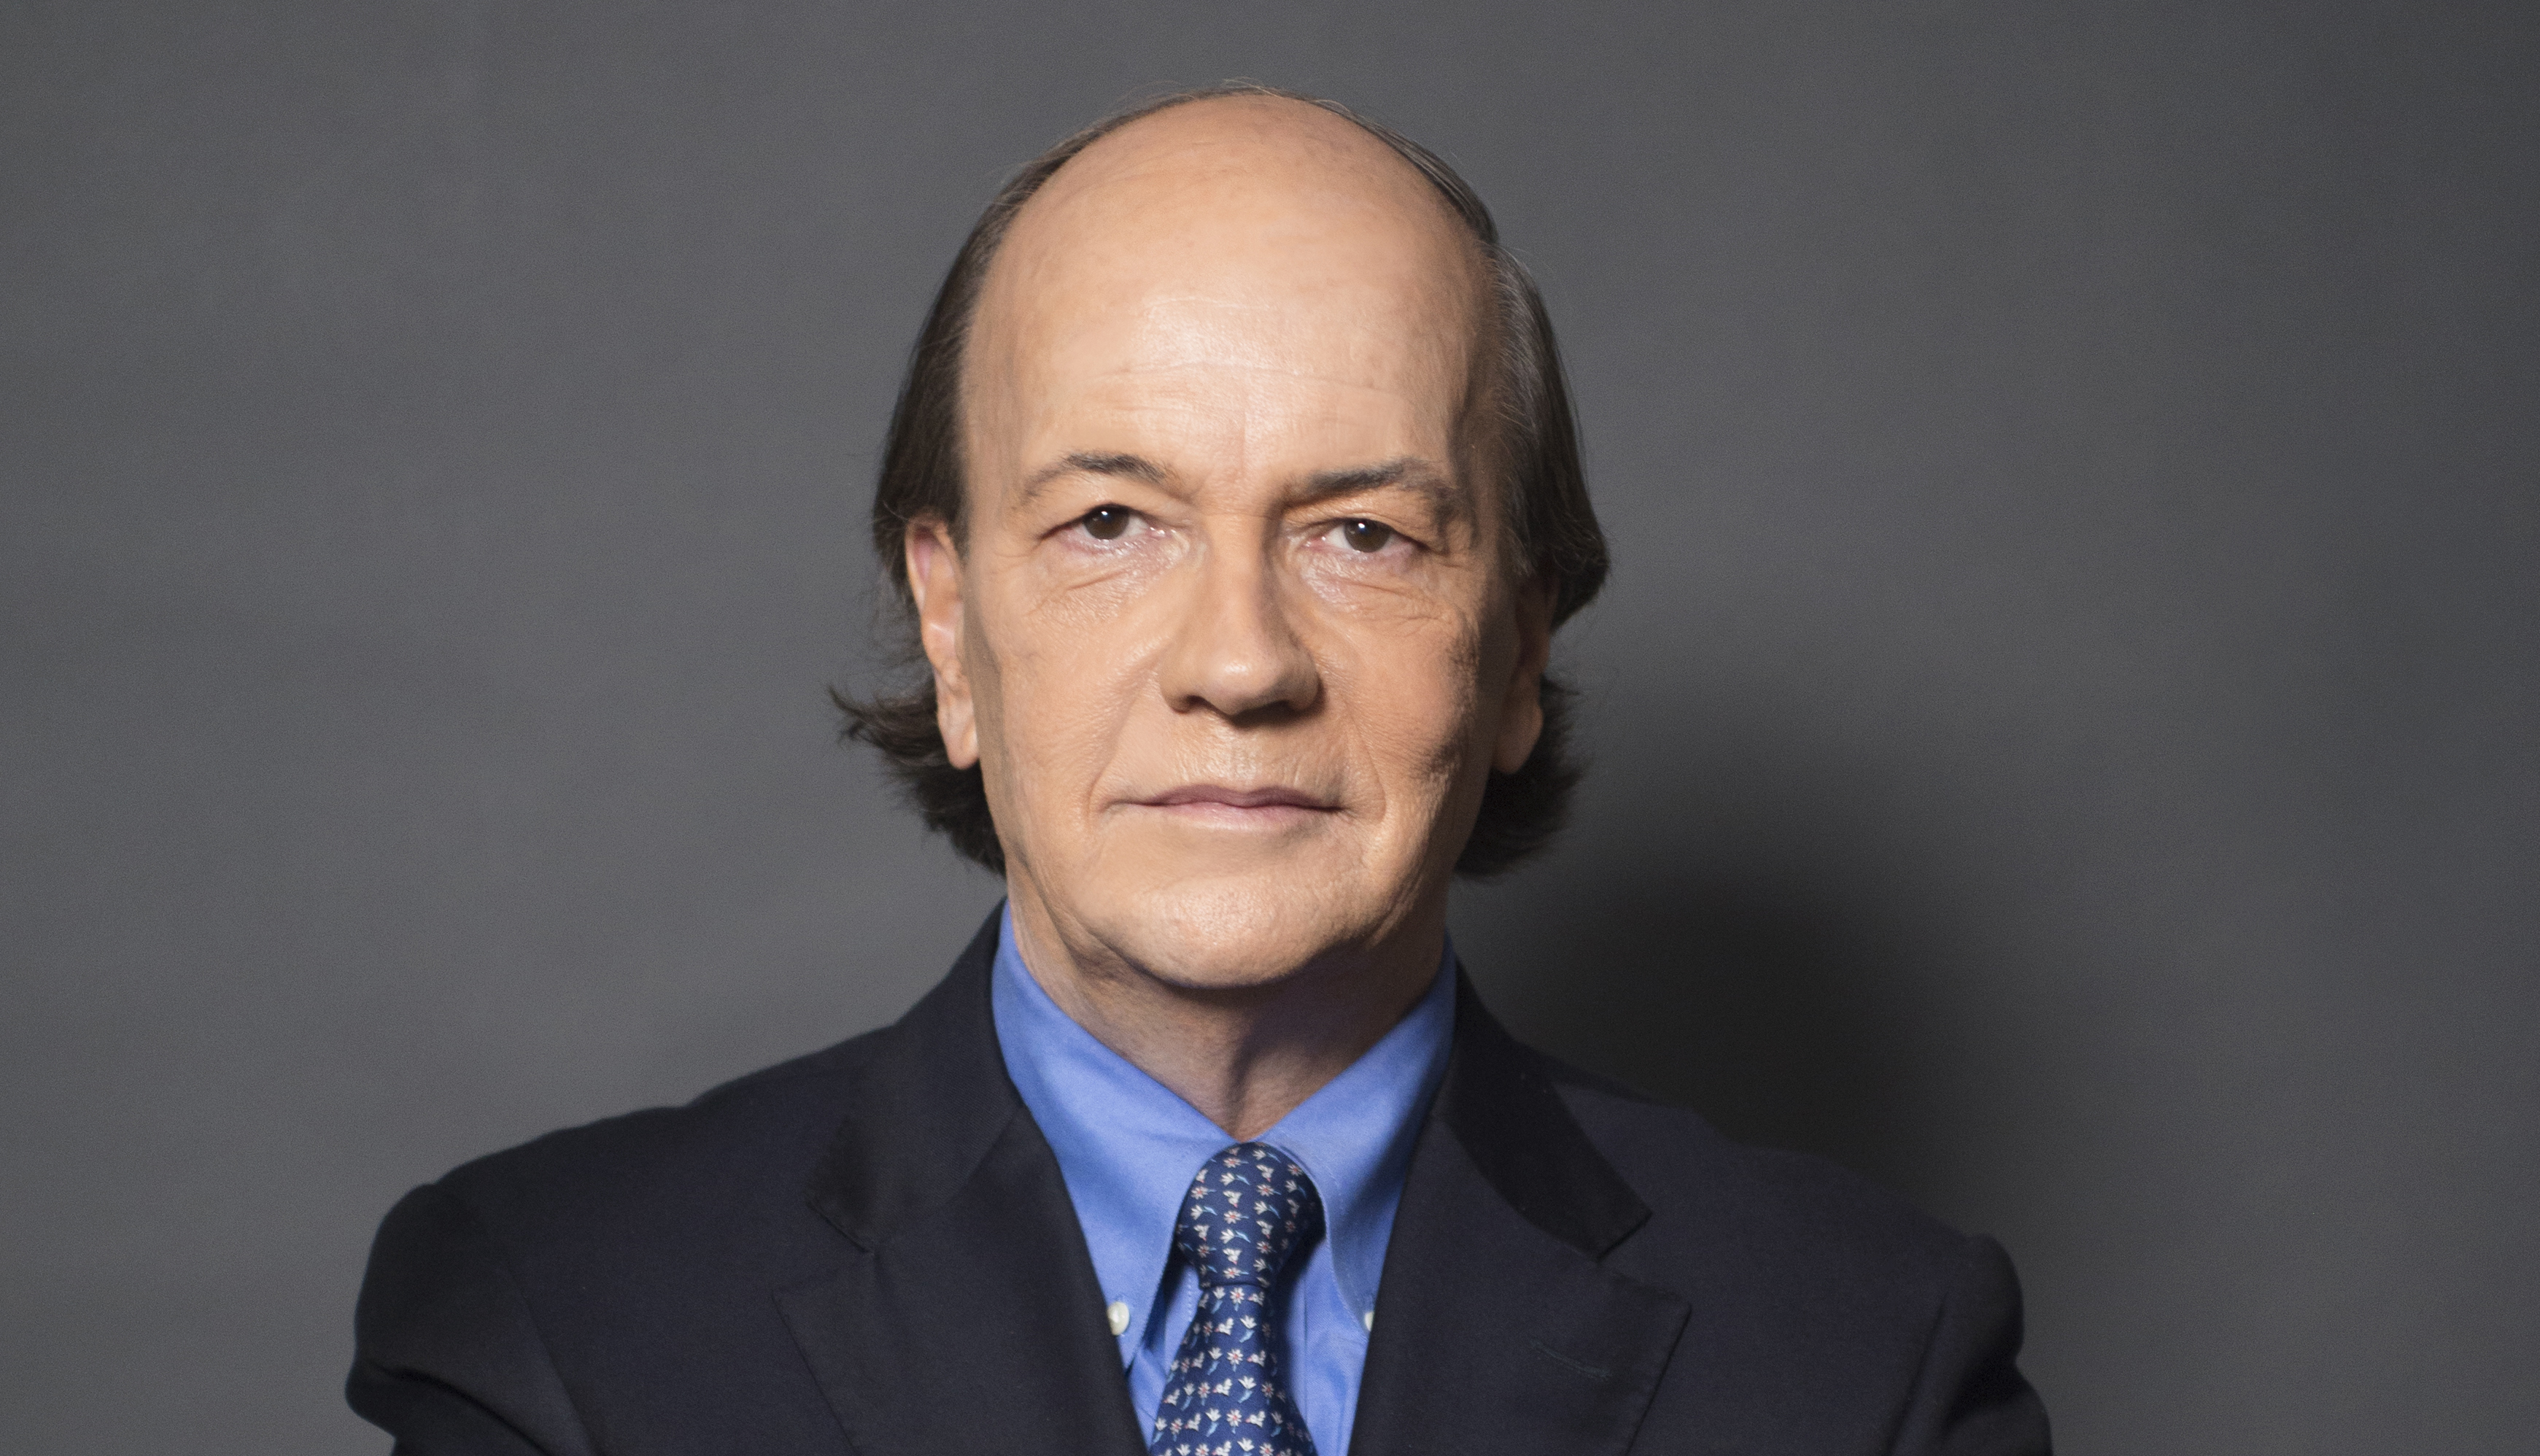 Jim Rickards, CEO